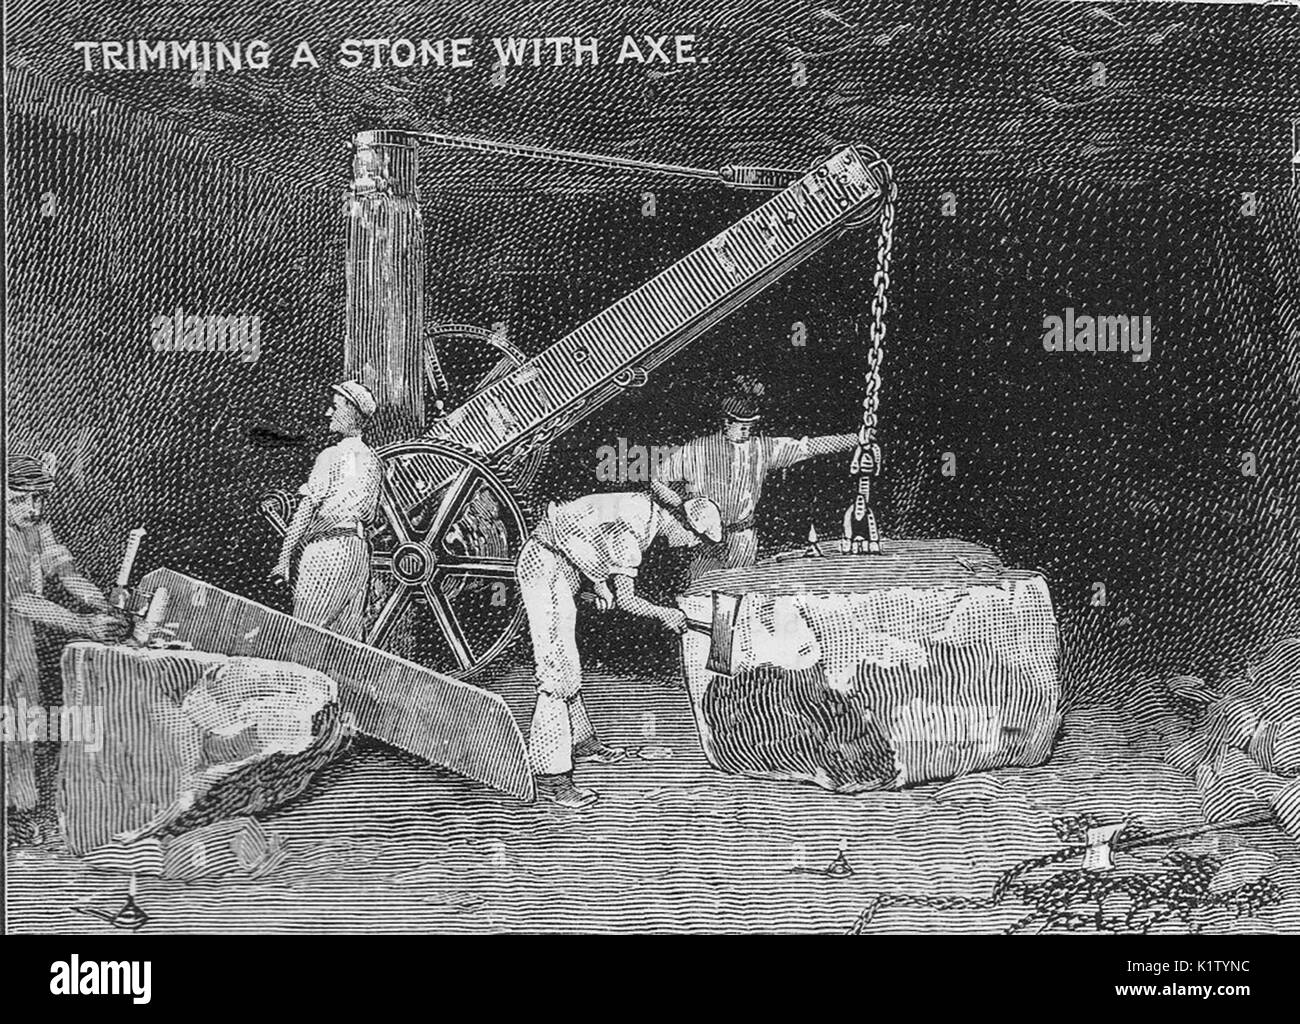 Bath Stone - Trimming a stone block with an axe - Stock Image